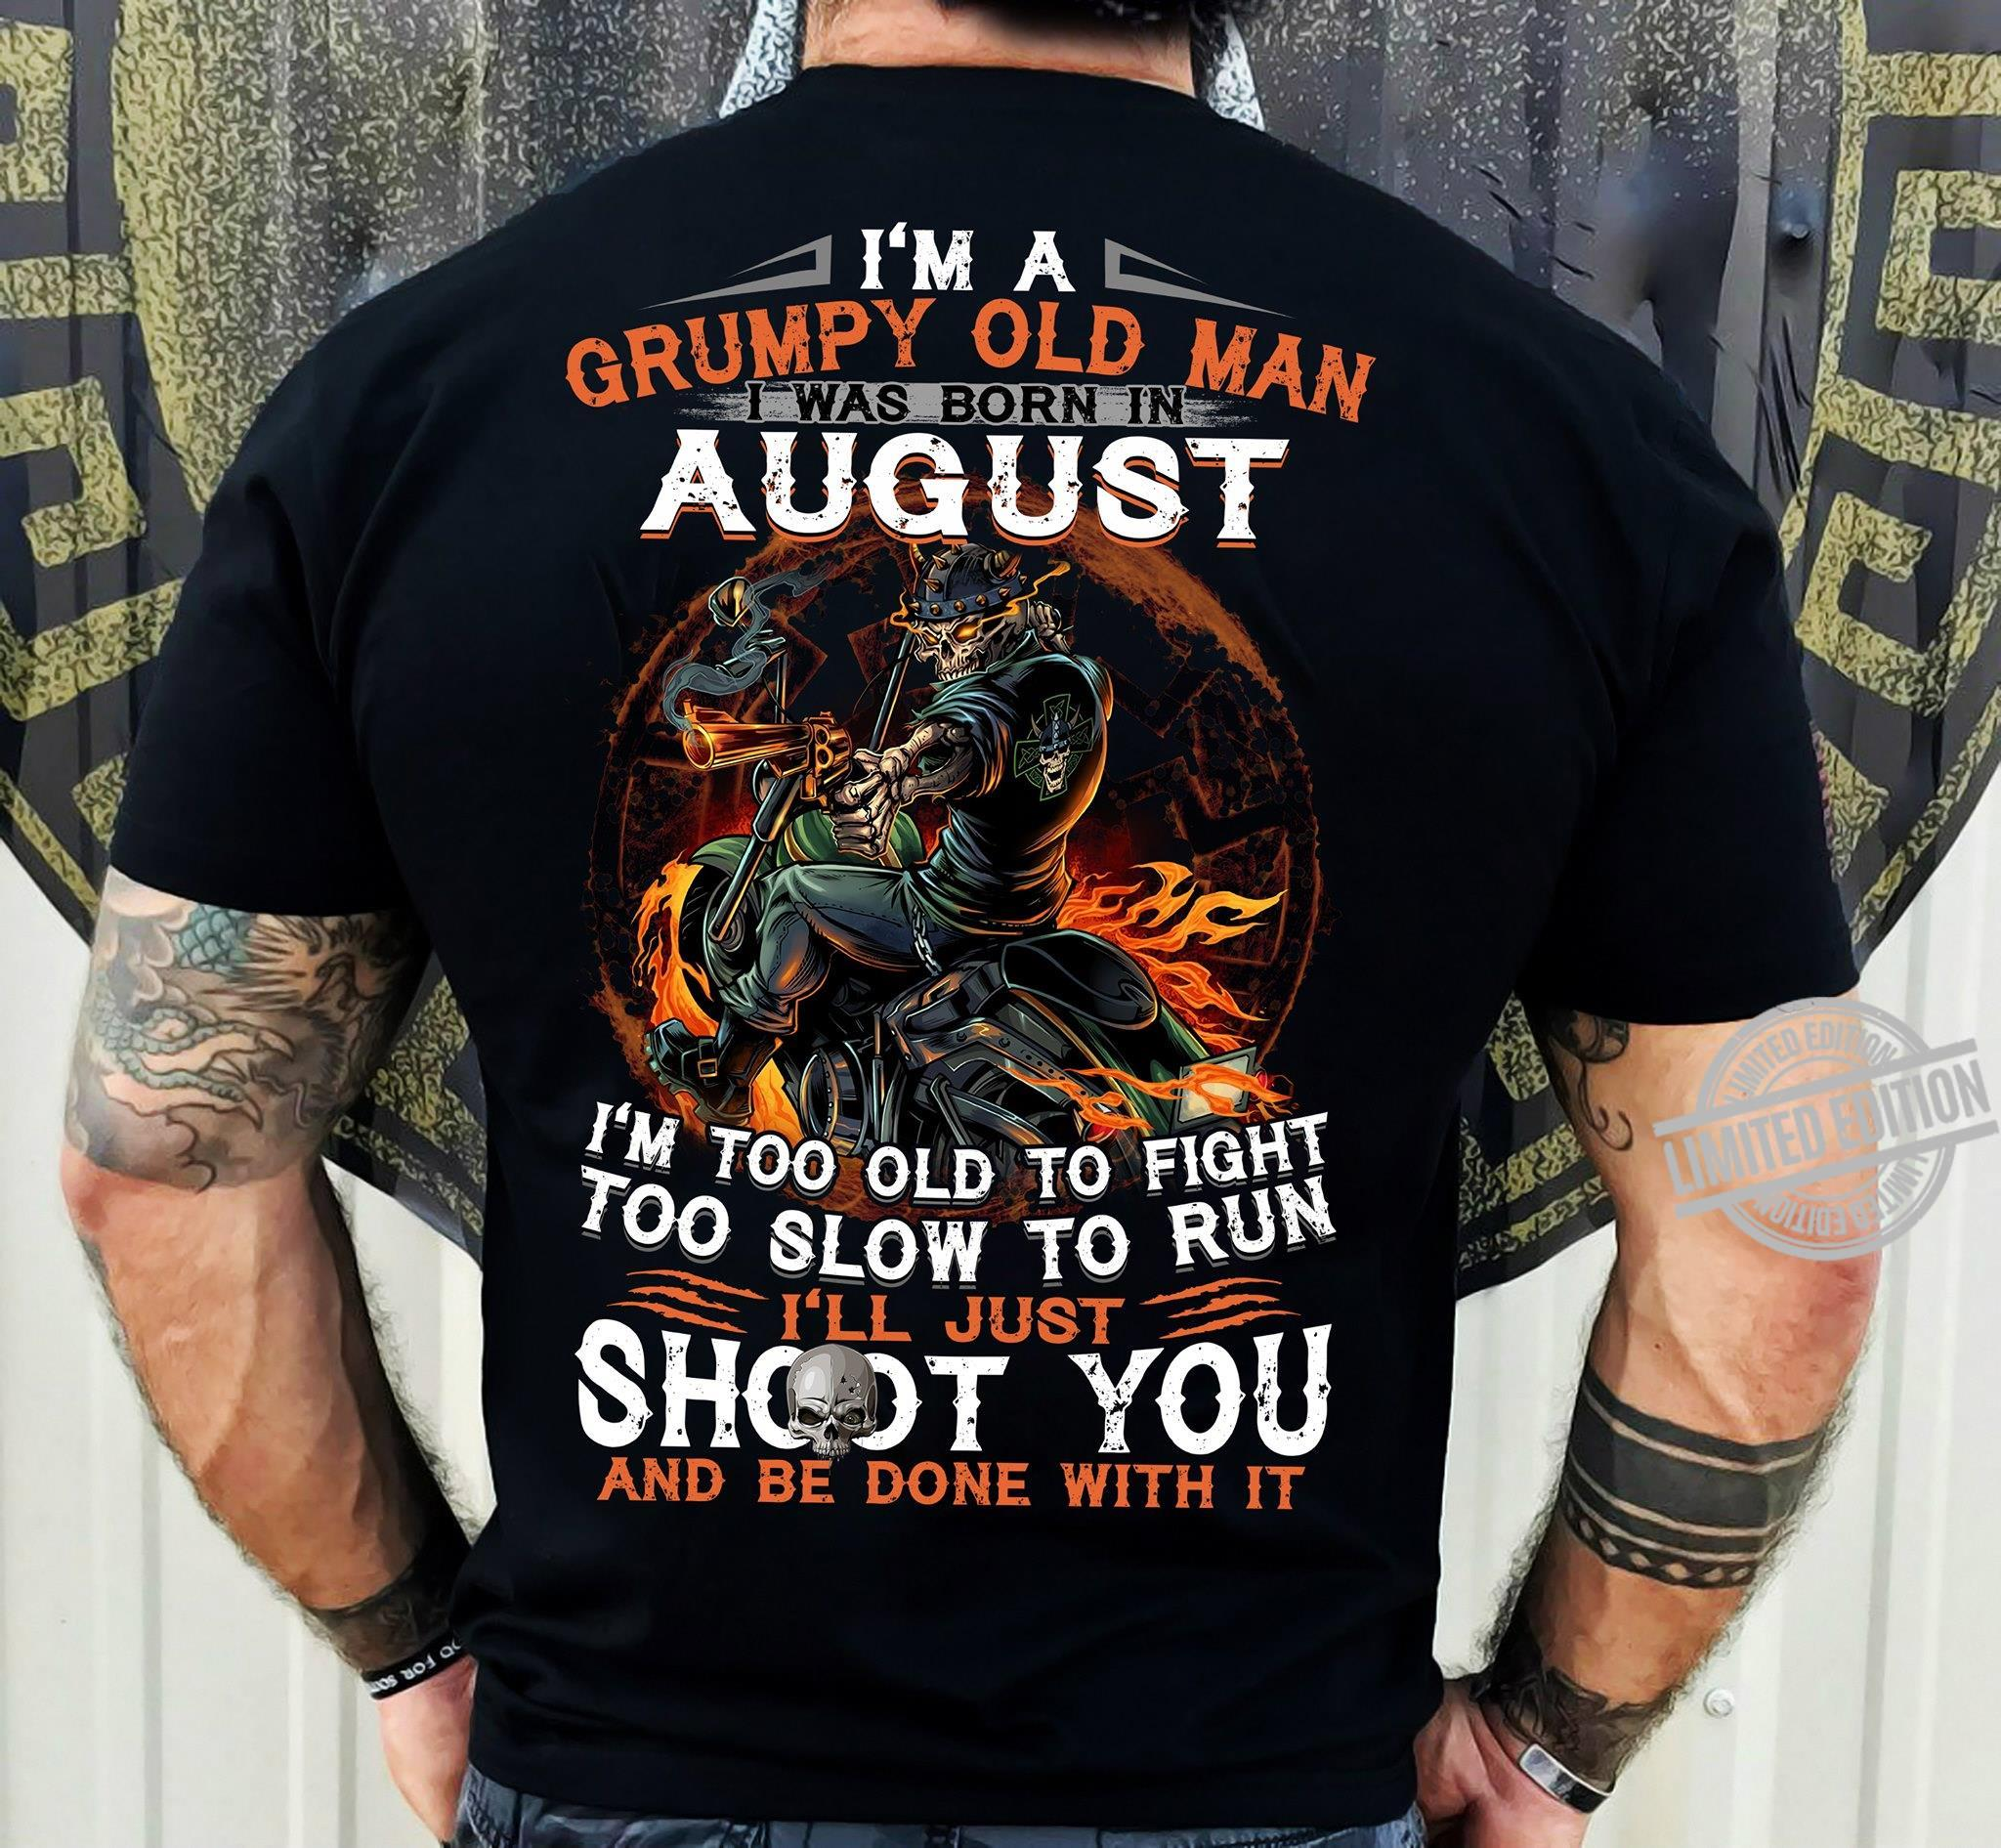 I'm A Grumpy Old Man I Was Born In August I'm Too Old To Fight Too Slow To Run Shoot You Shirt